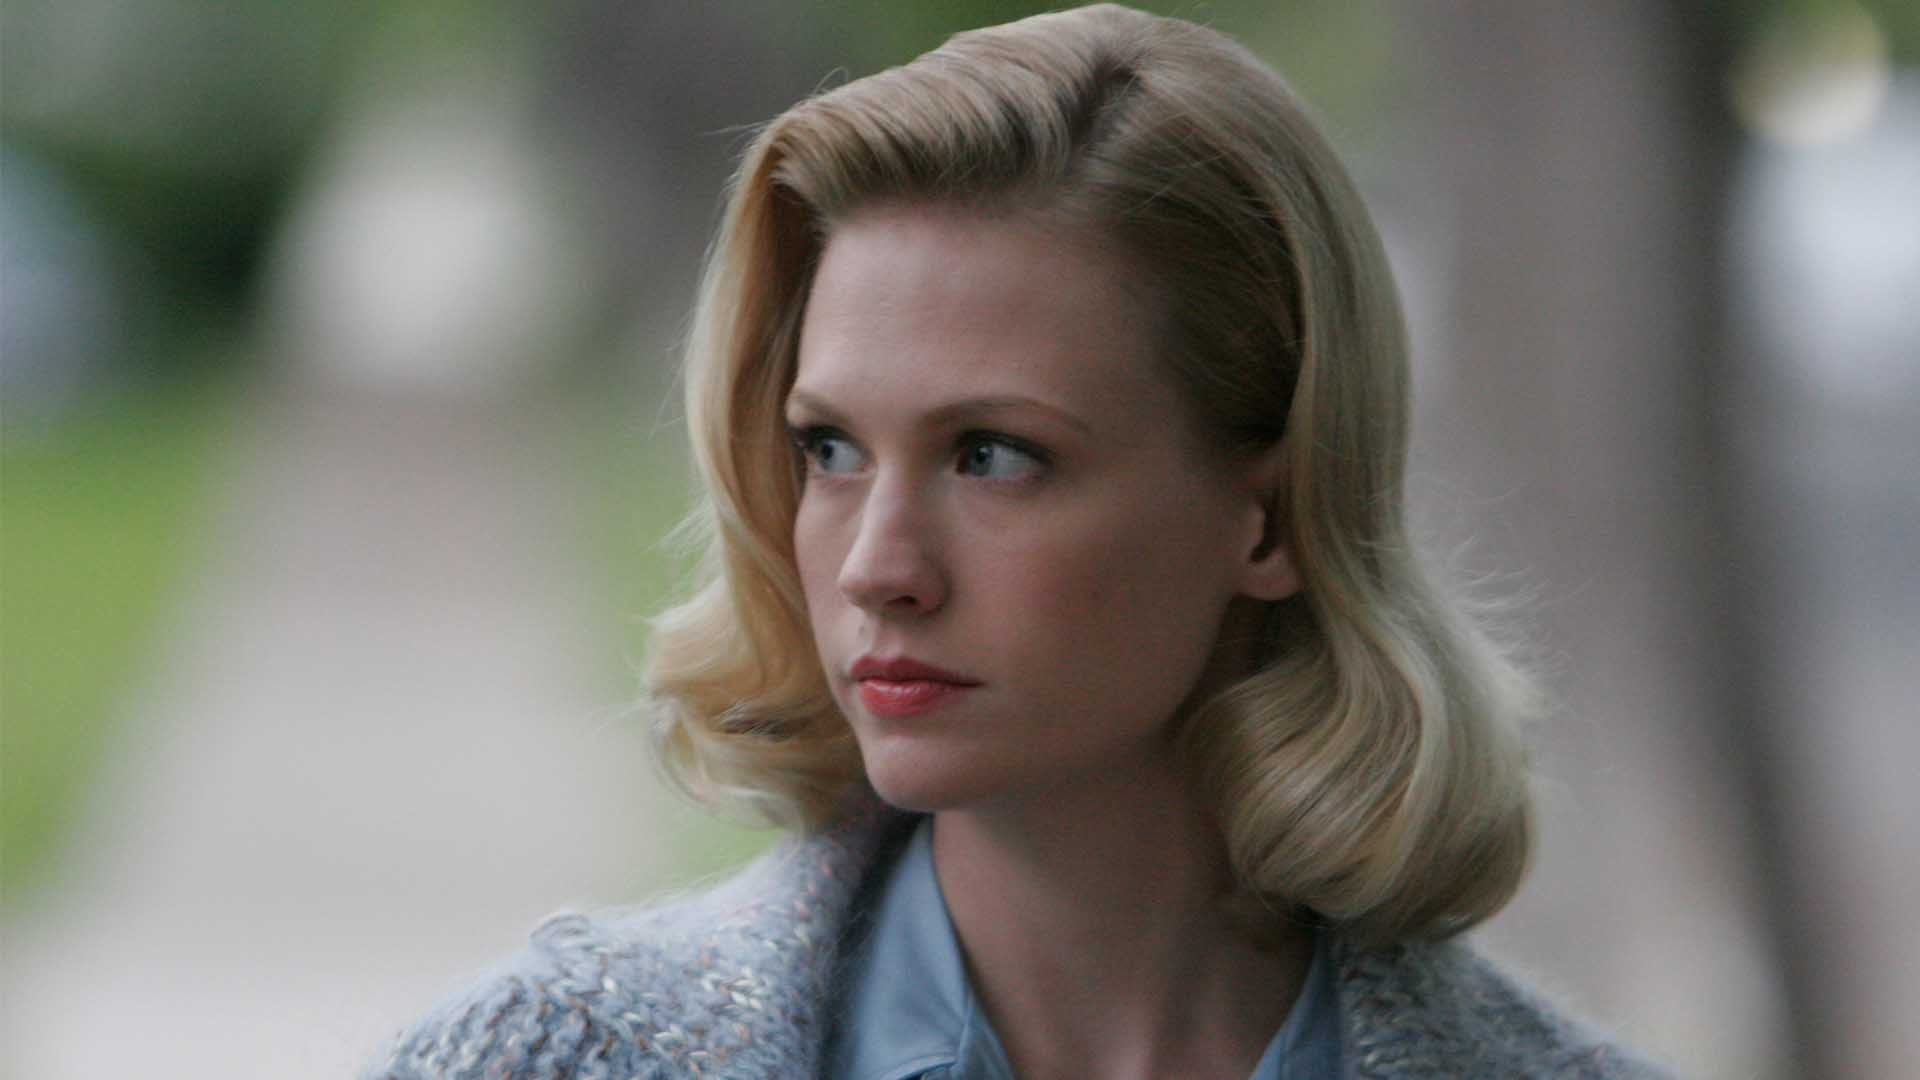 The Best Video Extra Mad Men Women's Hairstyles Inside Mad Men Pictures